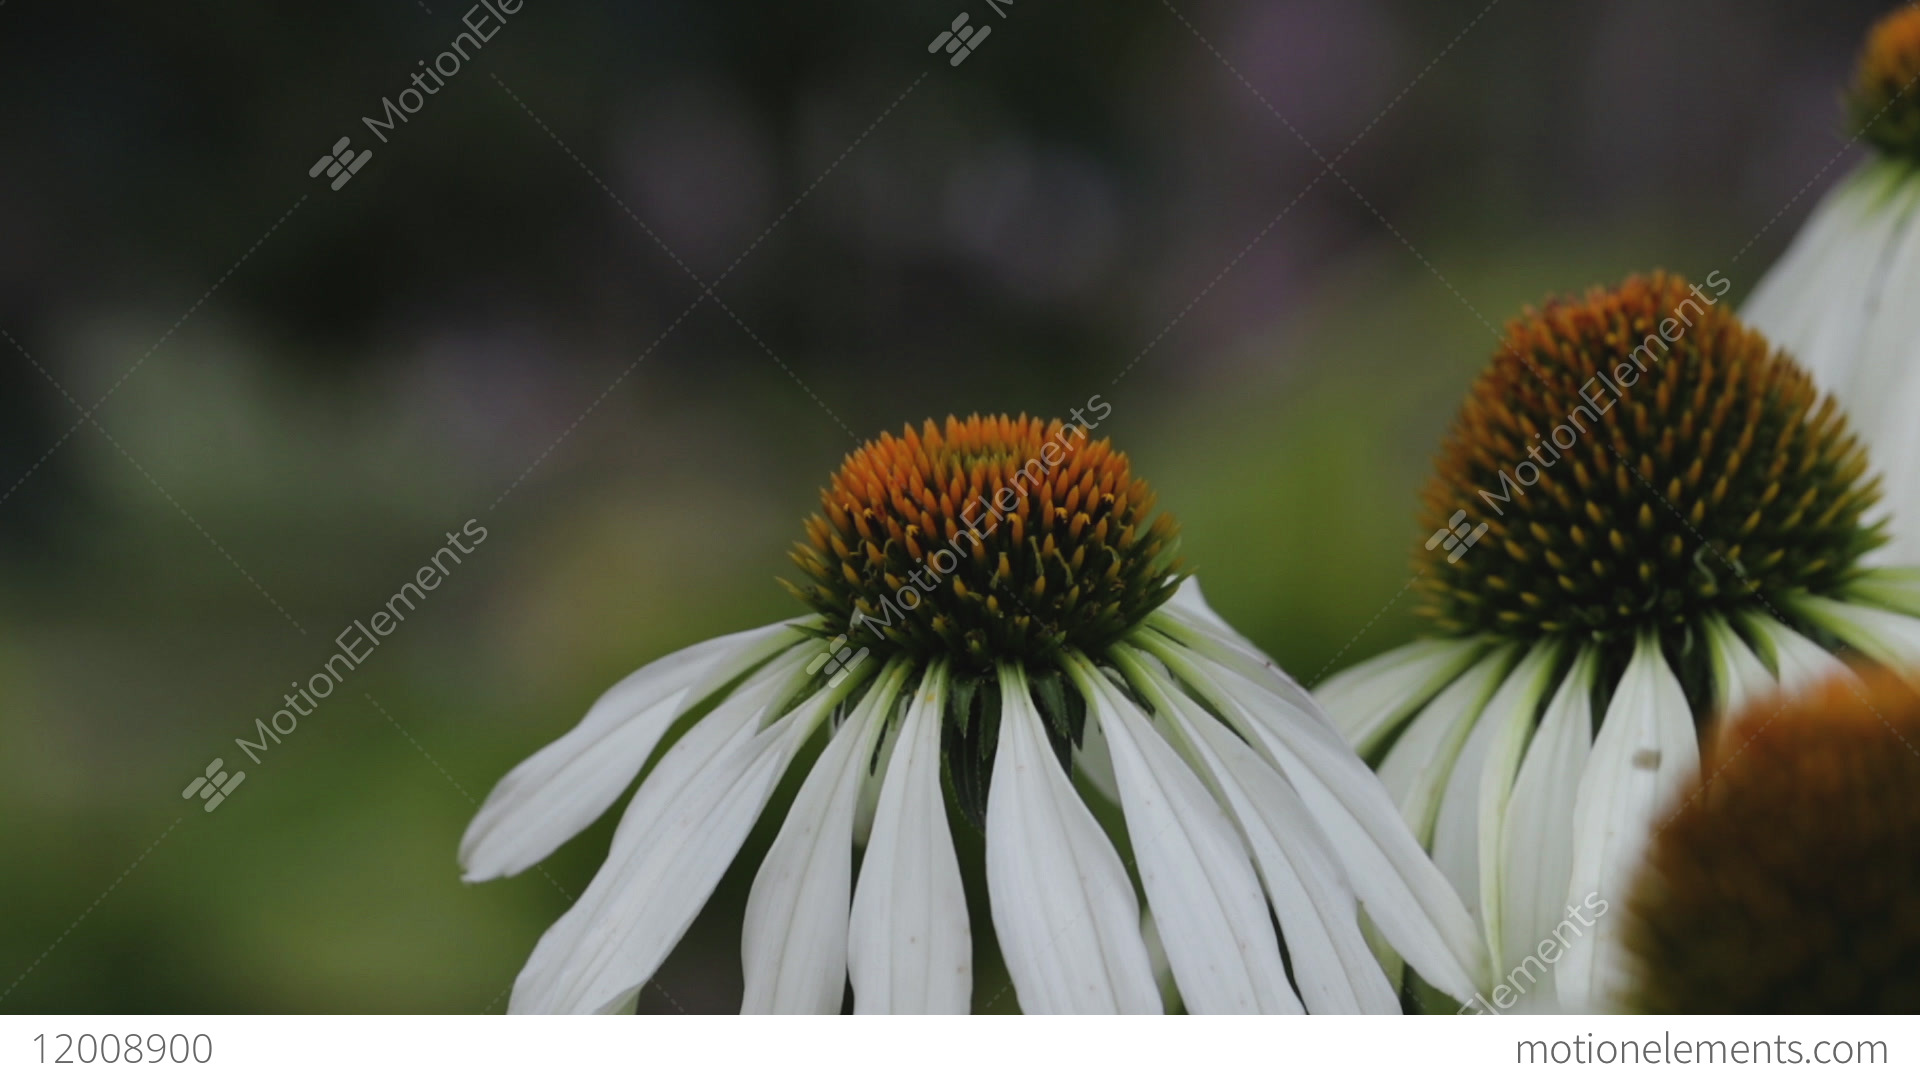 Beautiful daisy flowers images flowers healthy endangered bee pollinating a group of beautiful daisy stock video fooe endangered bee pollinating a group of beautiful daisy flowers in the izmirmasajfo